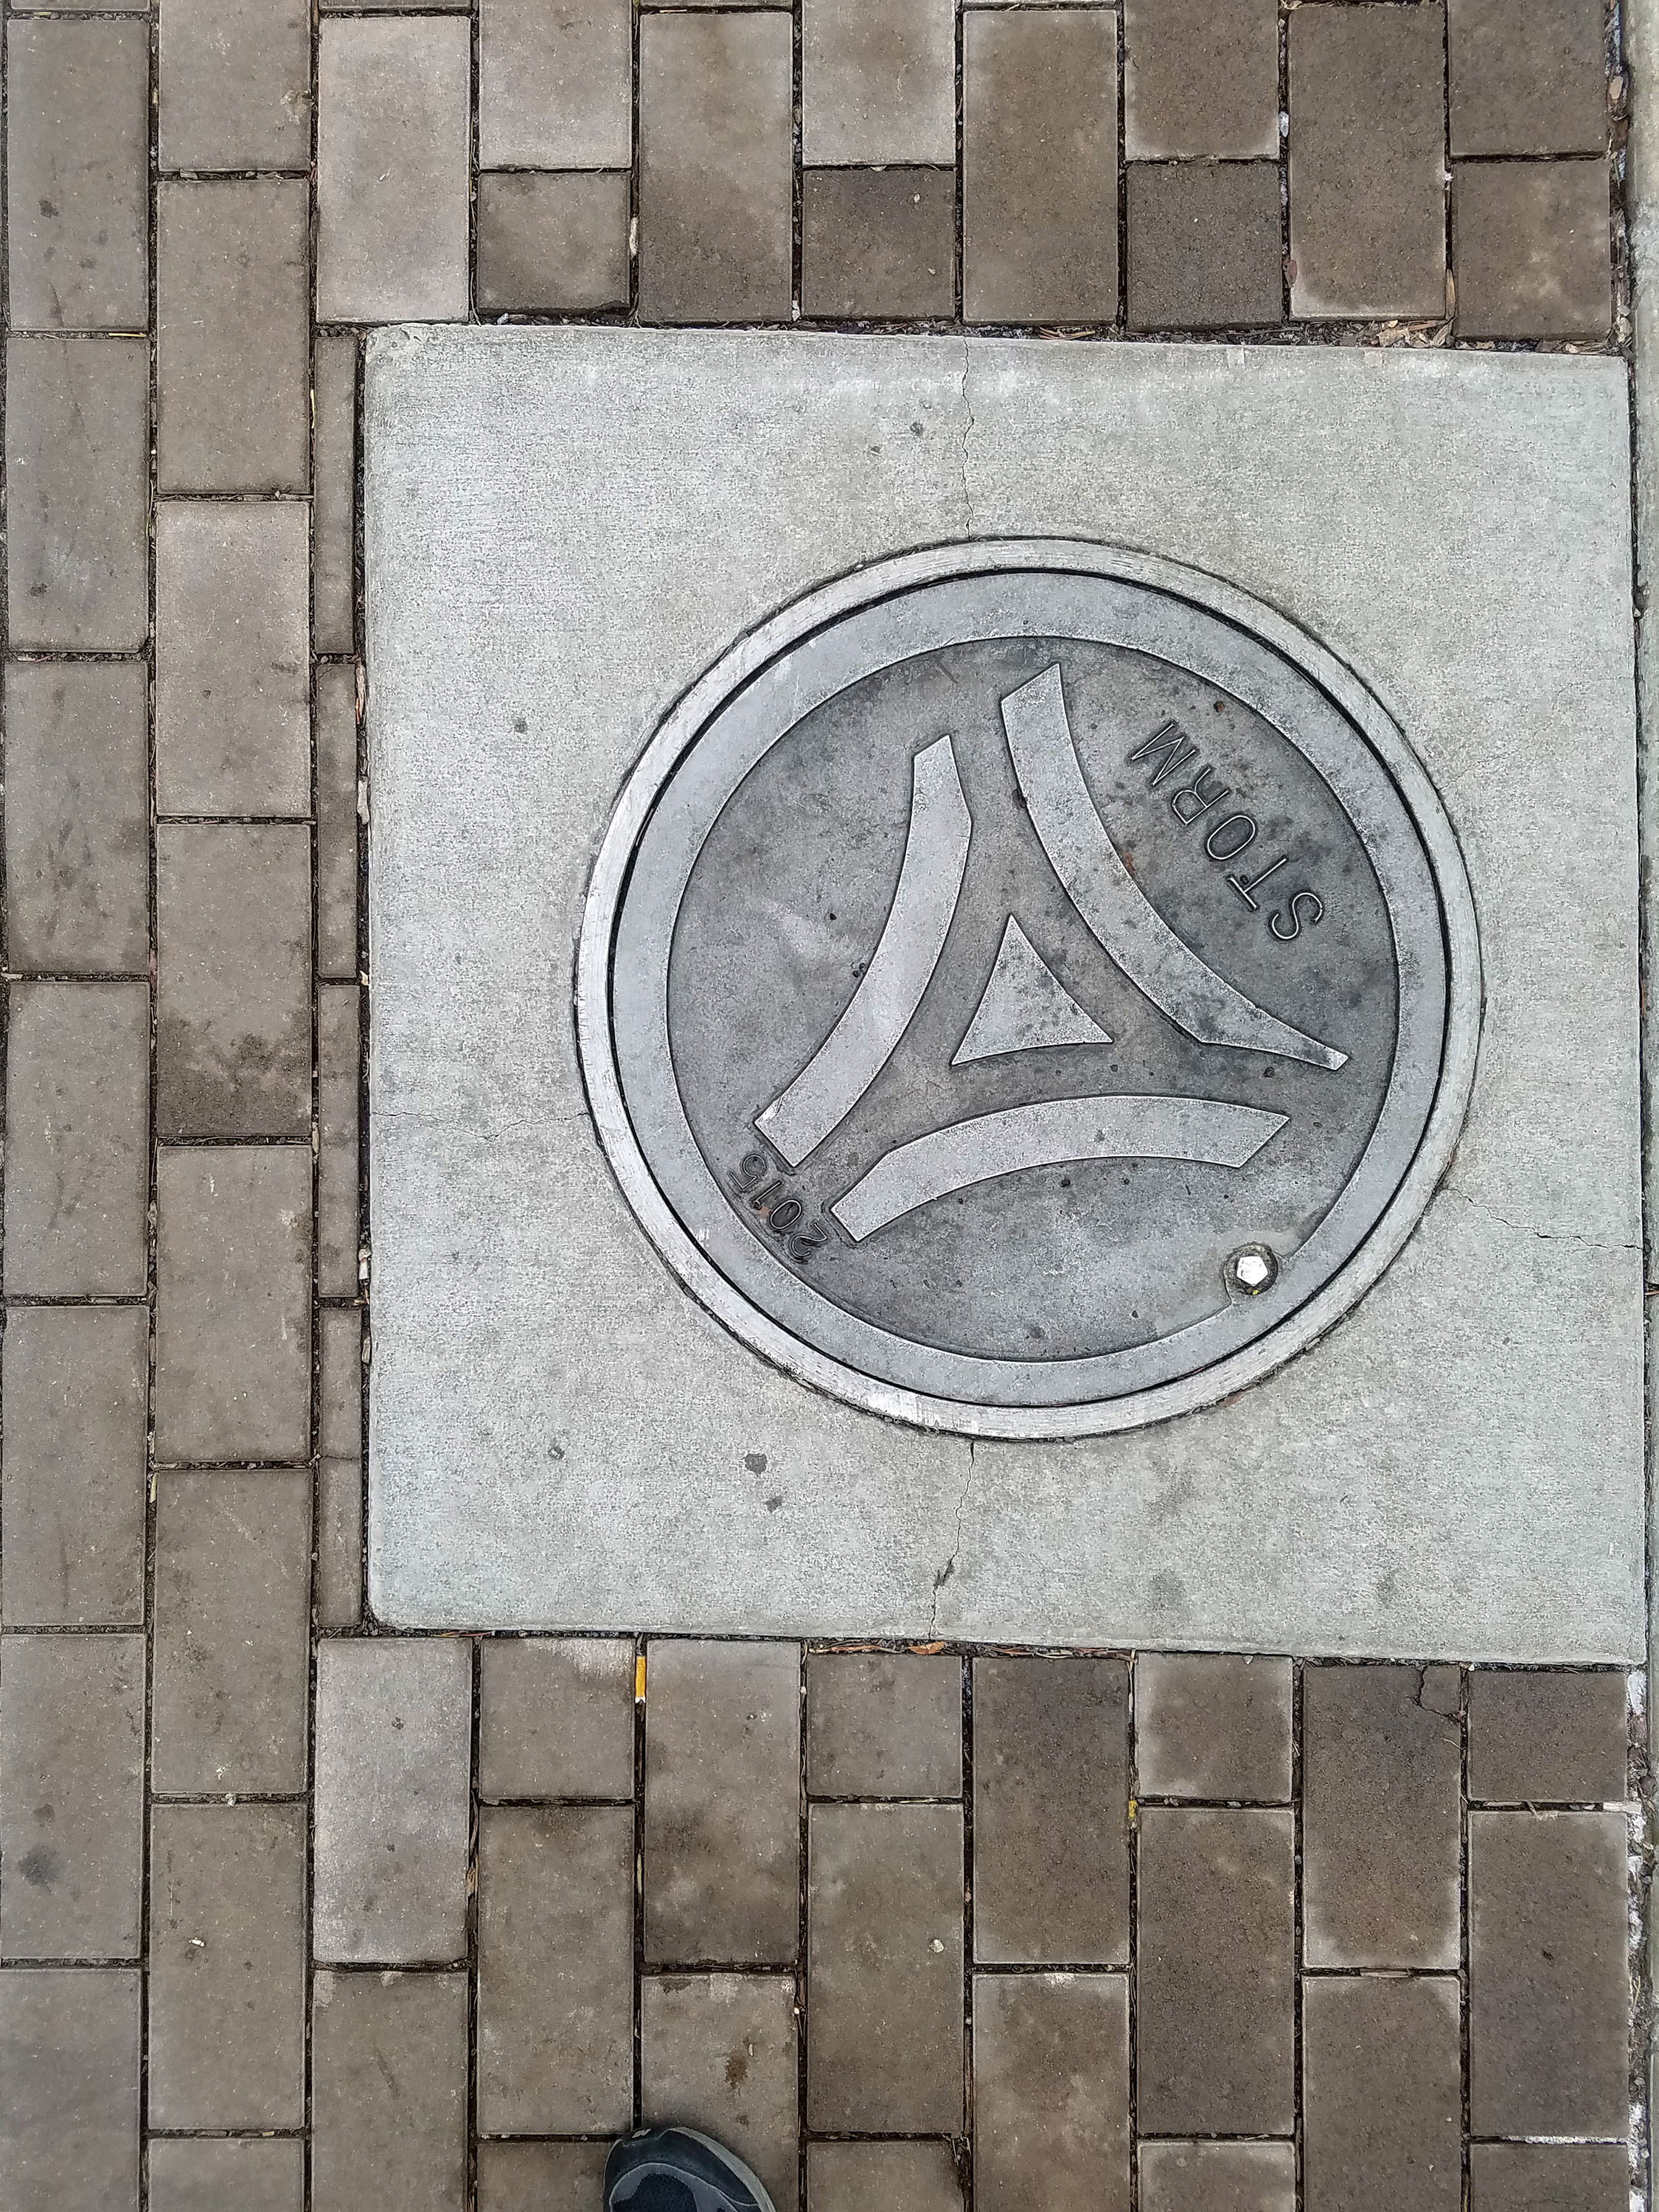 Auraria-branded manhole covers can be found disrupting the pattern of the bricks every once in a while. Bricks around the concrete margin are cut to interestingly small sizes.